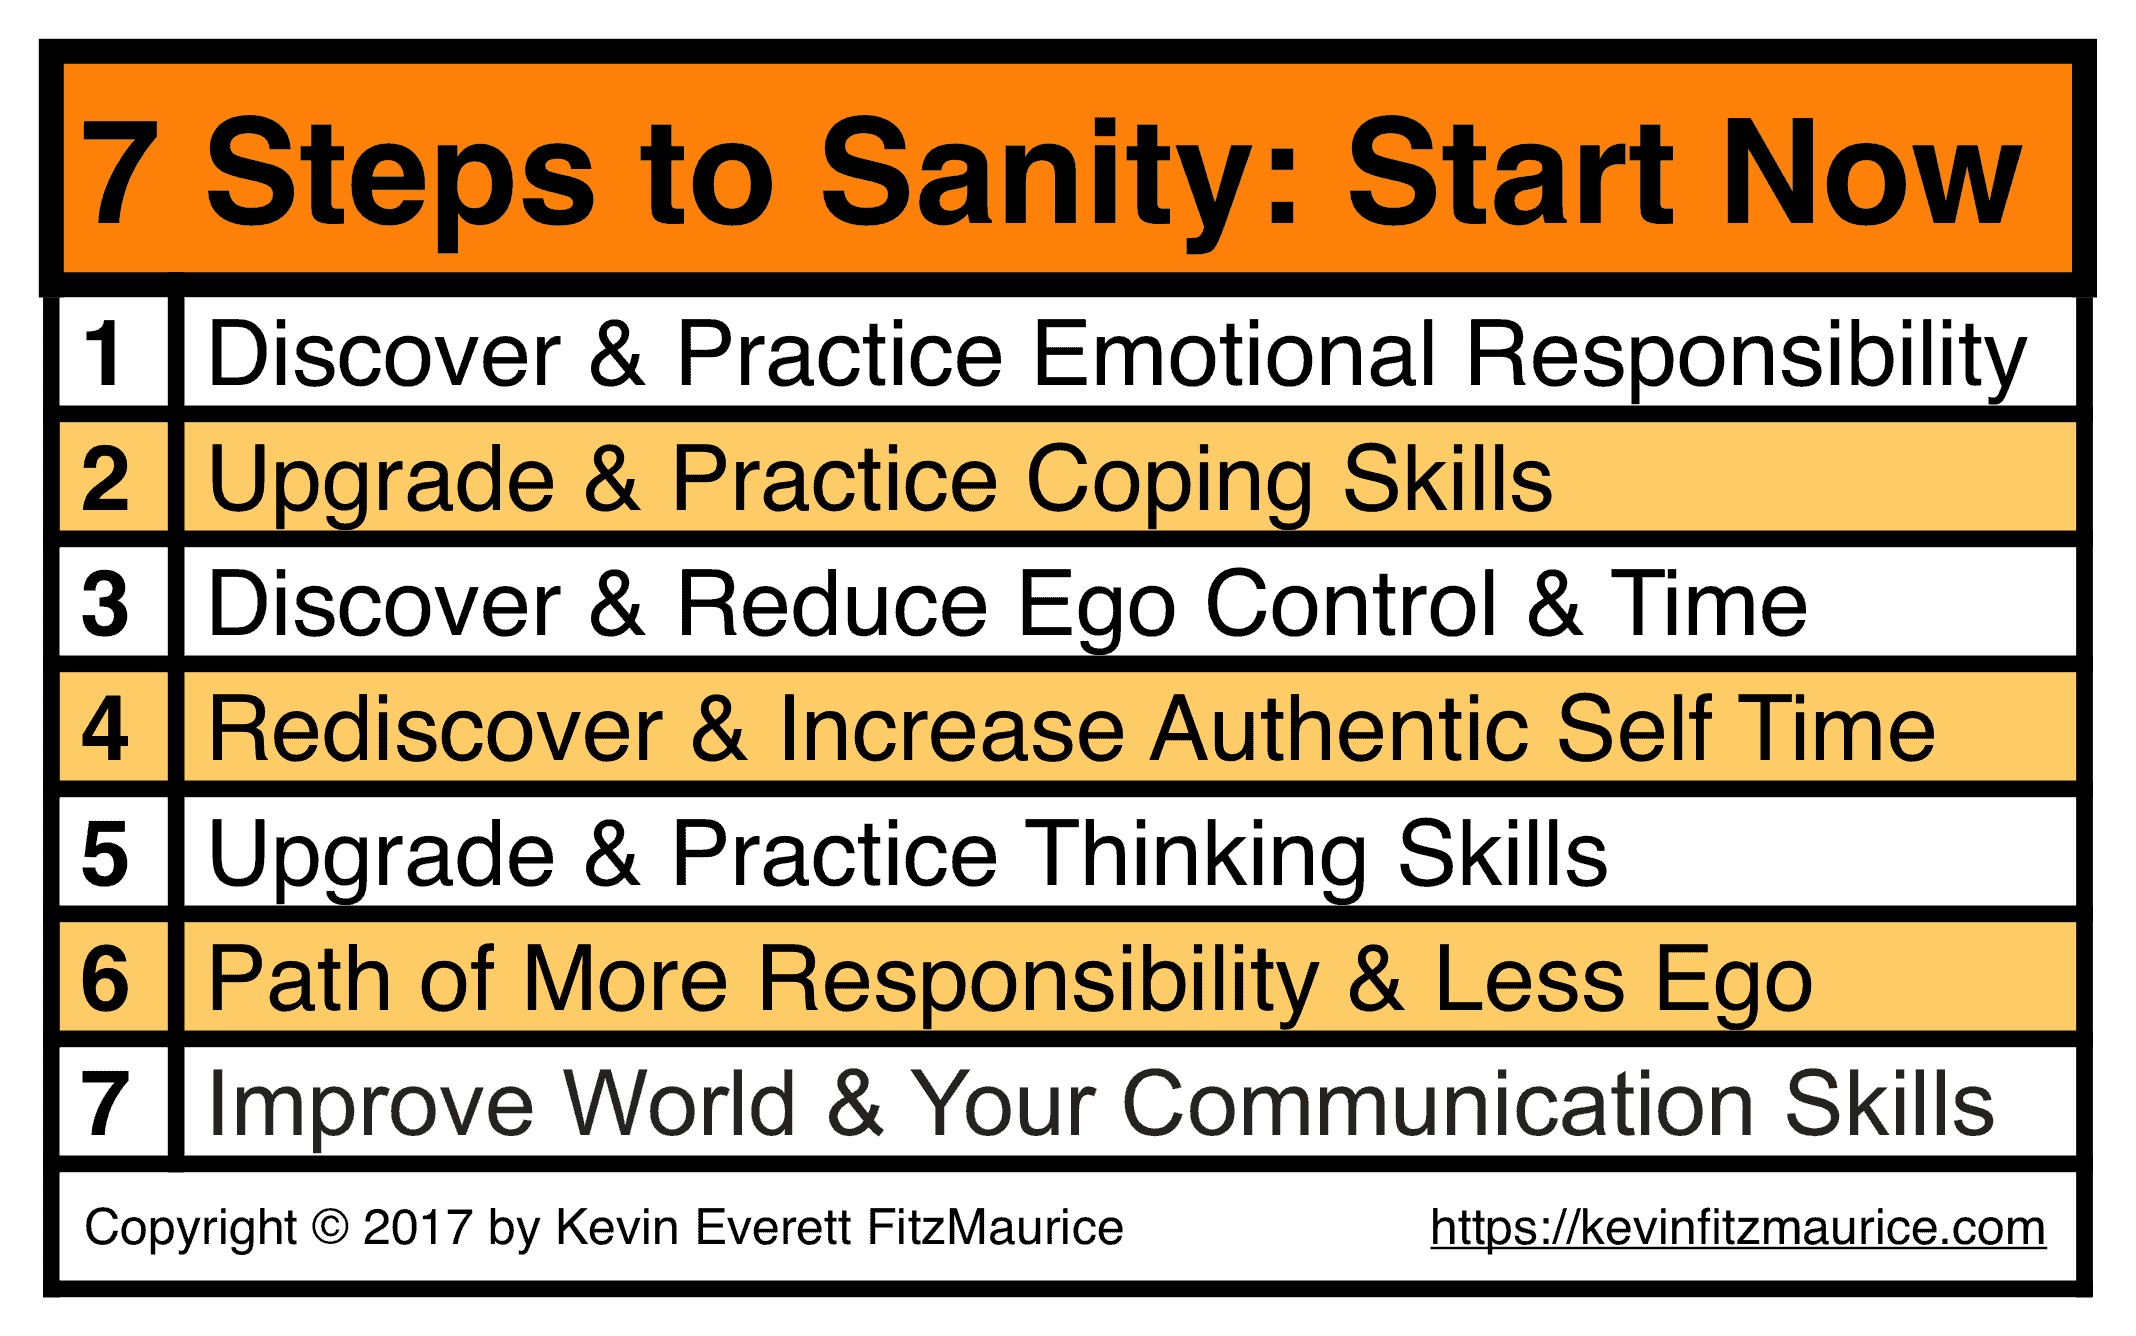 7 Steps to Take to Sanity